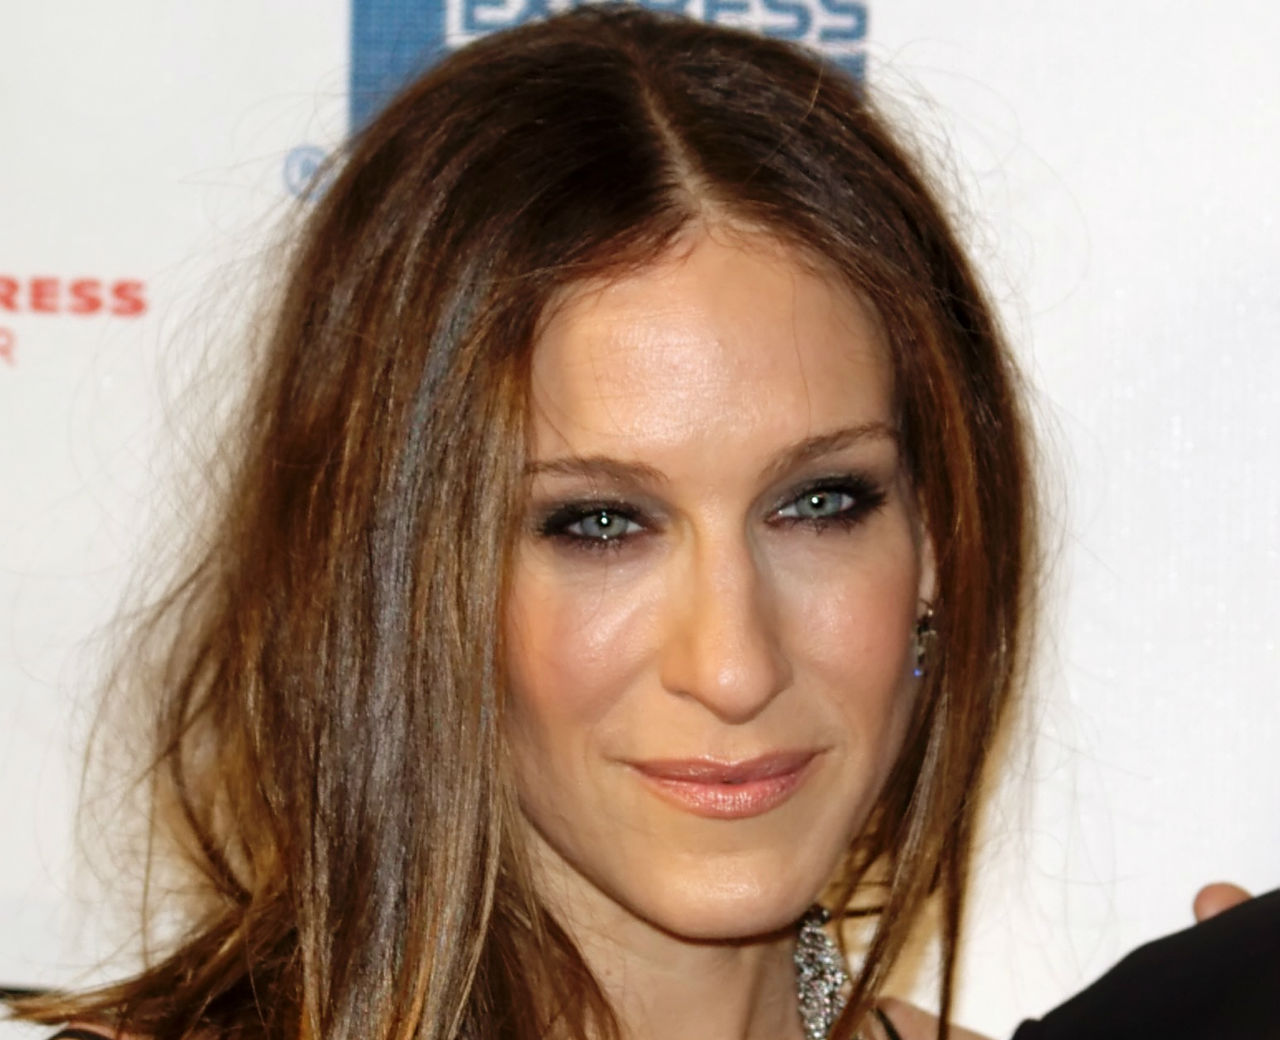 Sarah Jessica Parker Ends Mylan Partnership Over EpiPen Price Increase